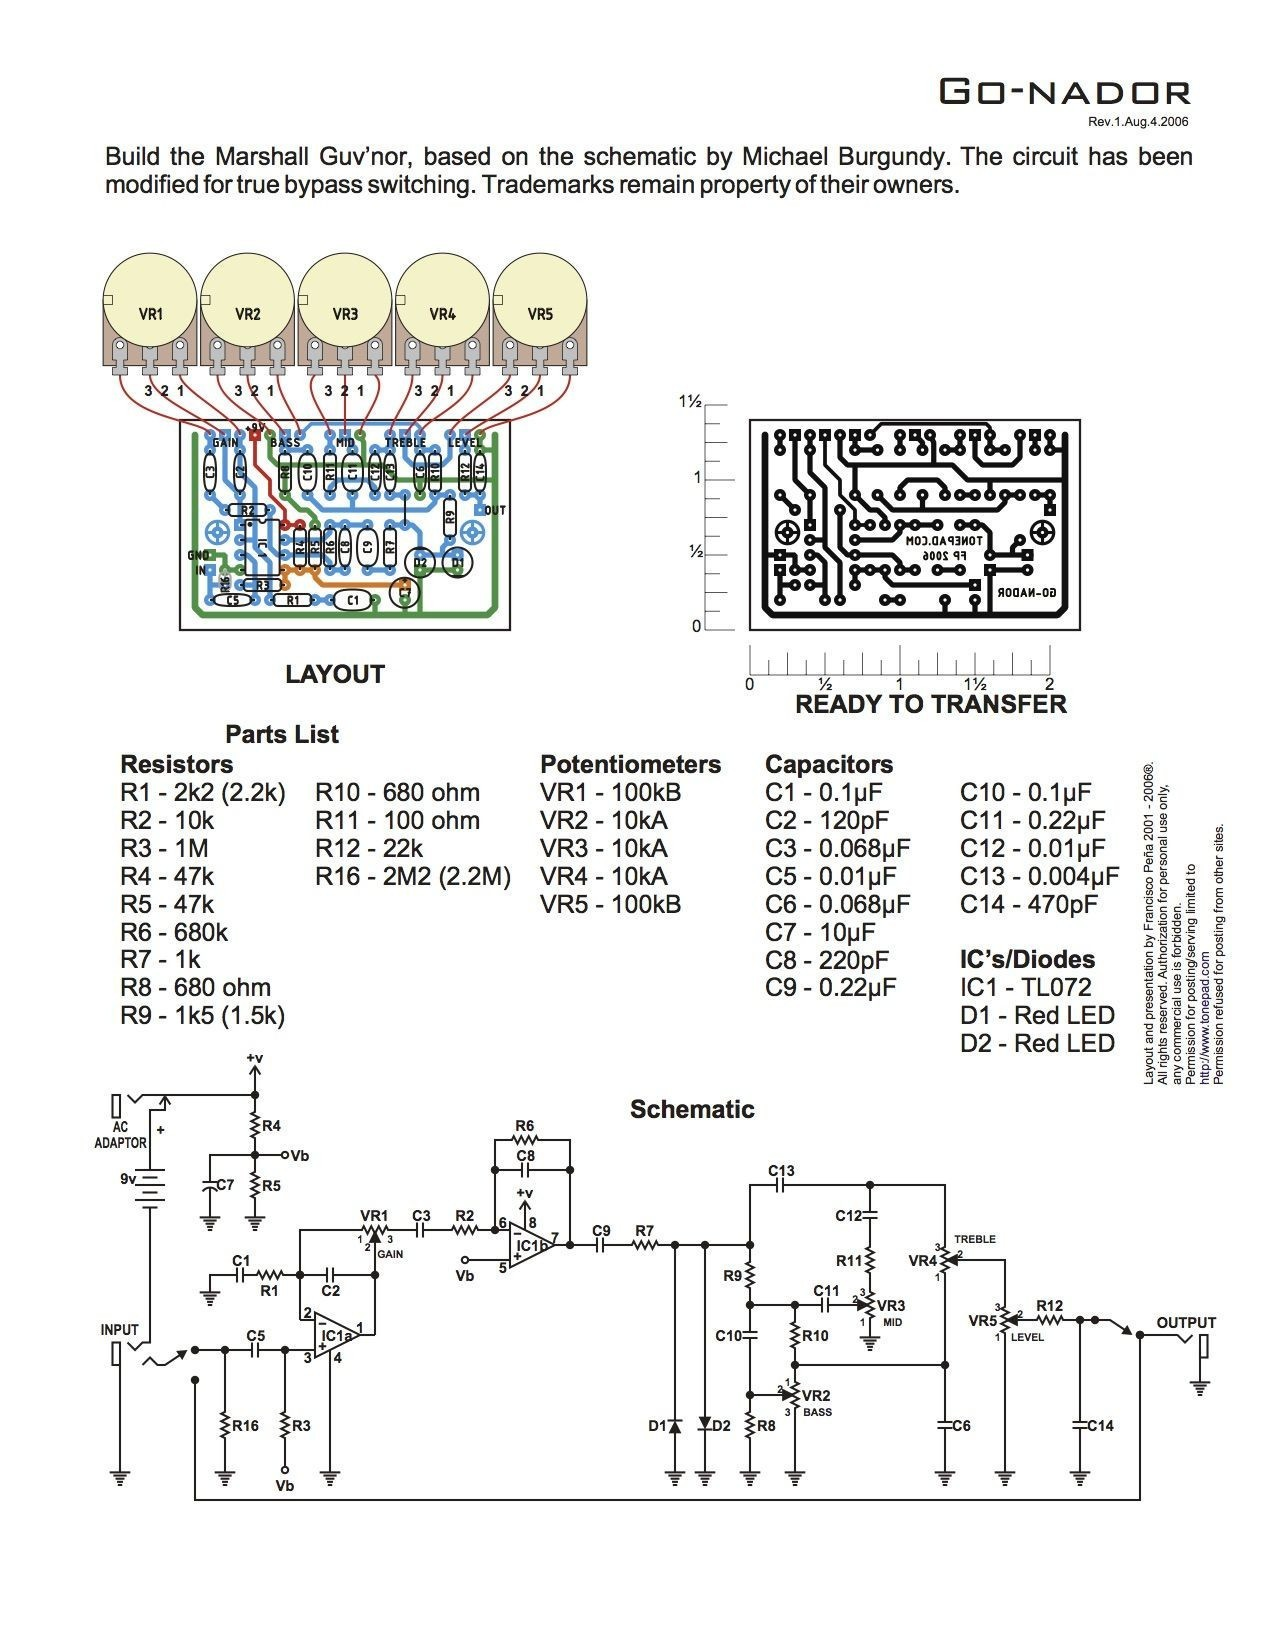 Kill Switch Wiring Diagram Car Valid Wiring Diagram for A ... on ignition switch cable, ignition tumbler diagram, harley ignition switch diagram, chevy ignition switch diagram, ignition switch relay diagram, ignition switch system, ford expedition fuel diagram, ignition switch tools, ignition switch repair, ignition switch troubleshooting, yj ignition diagram, ignition switch wire, ignition switch sensor, universal ignition switch diagram, 2001 jeep grand cherokee fuse box diagram, 1969 mustang ignition switch diagram, ignition switch replacement, ignition switch plug, ignition switch index, ignition switch fuse,